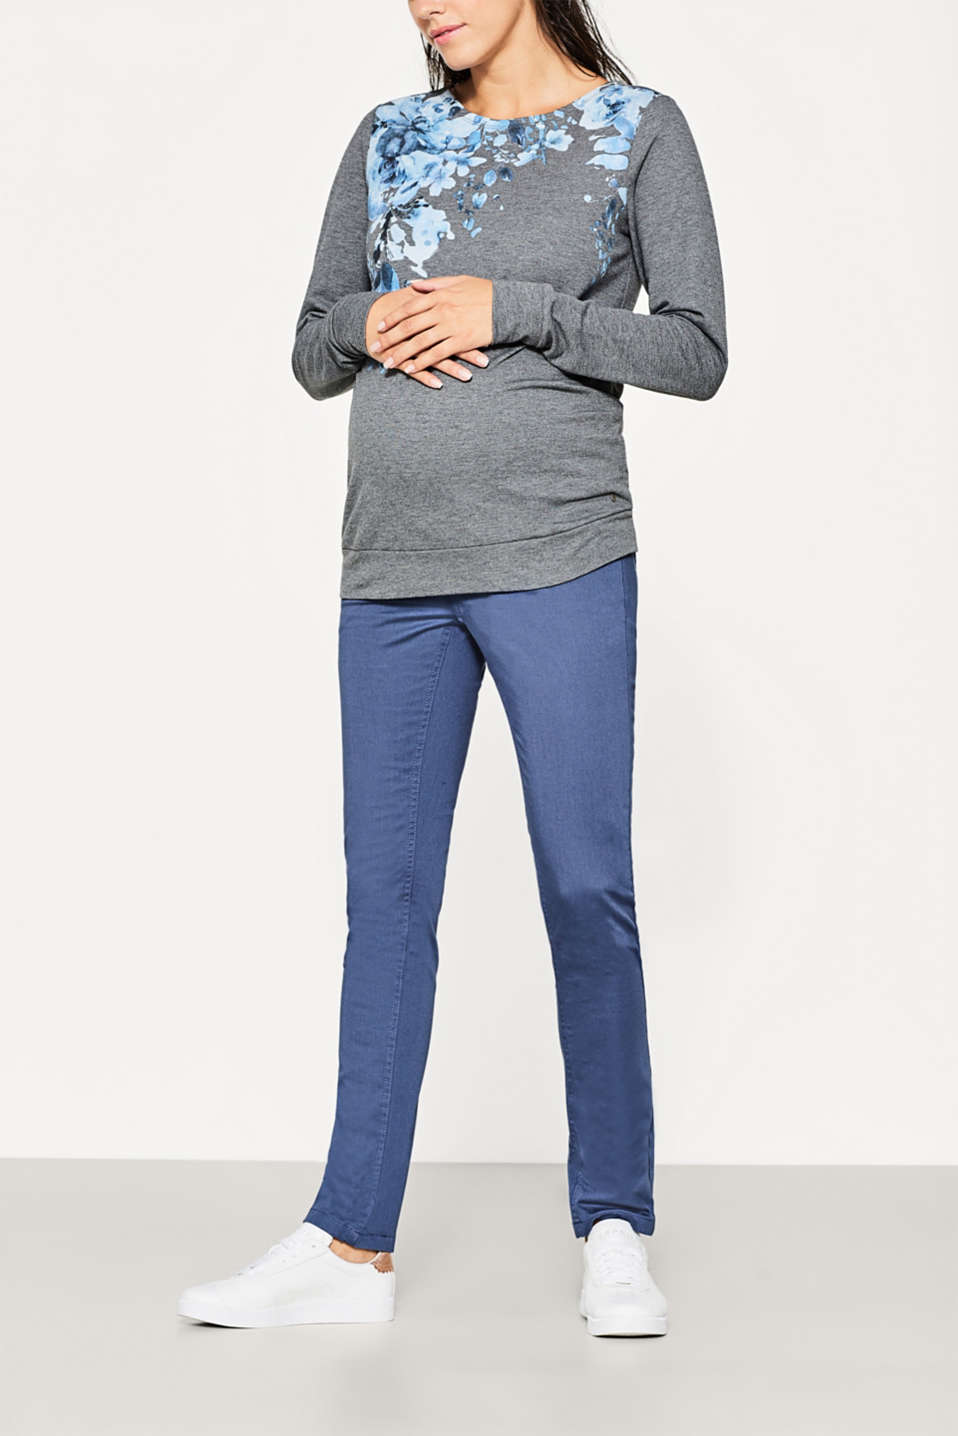 Esprit - Basic stretch trousers, over-bump waist